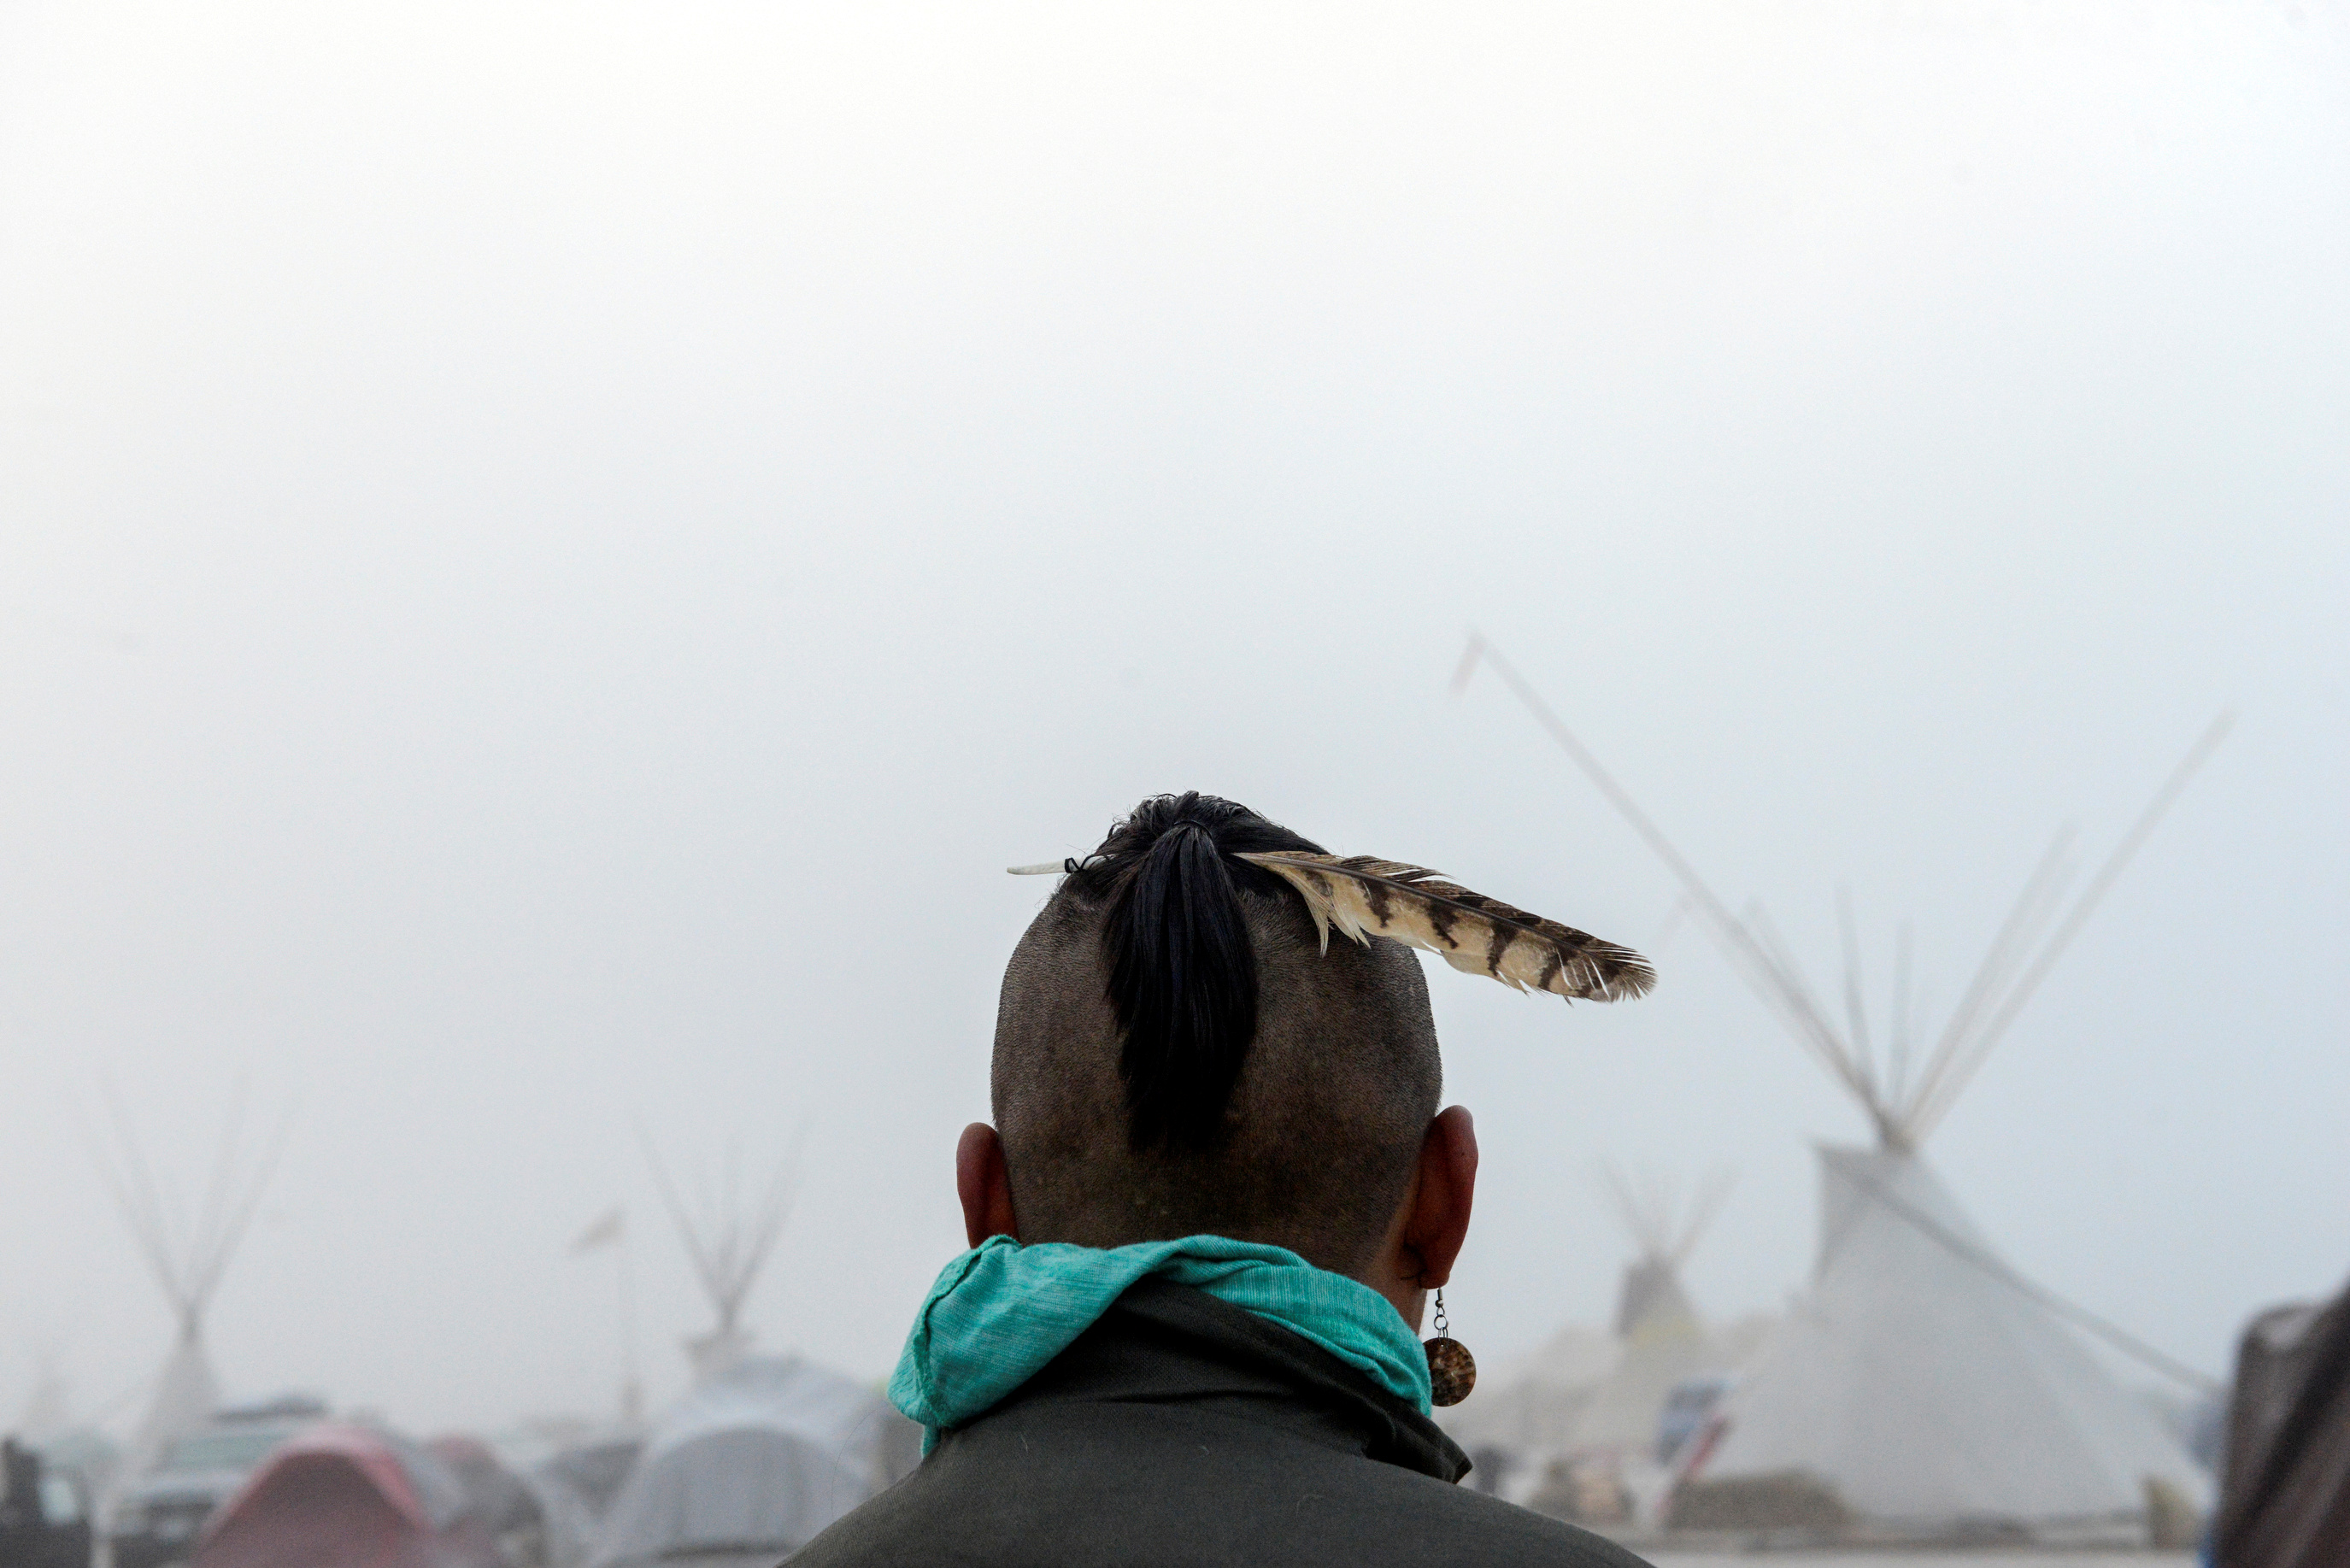 A man from the Muskogee tribe looks at the Oceti Sakowin shrouded in mist during a protest against the Dakota Access pipeline near the Standing Rock Indian Reservation.